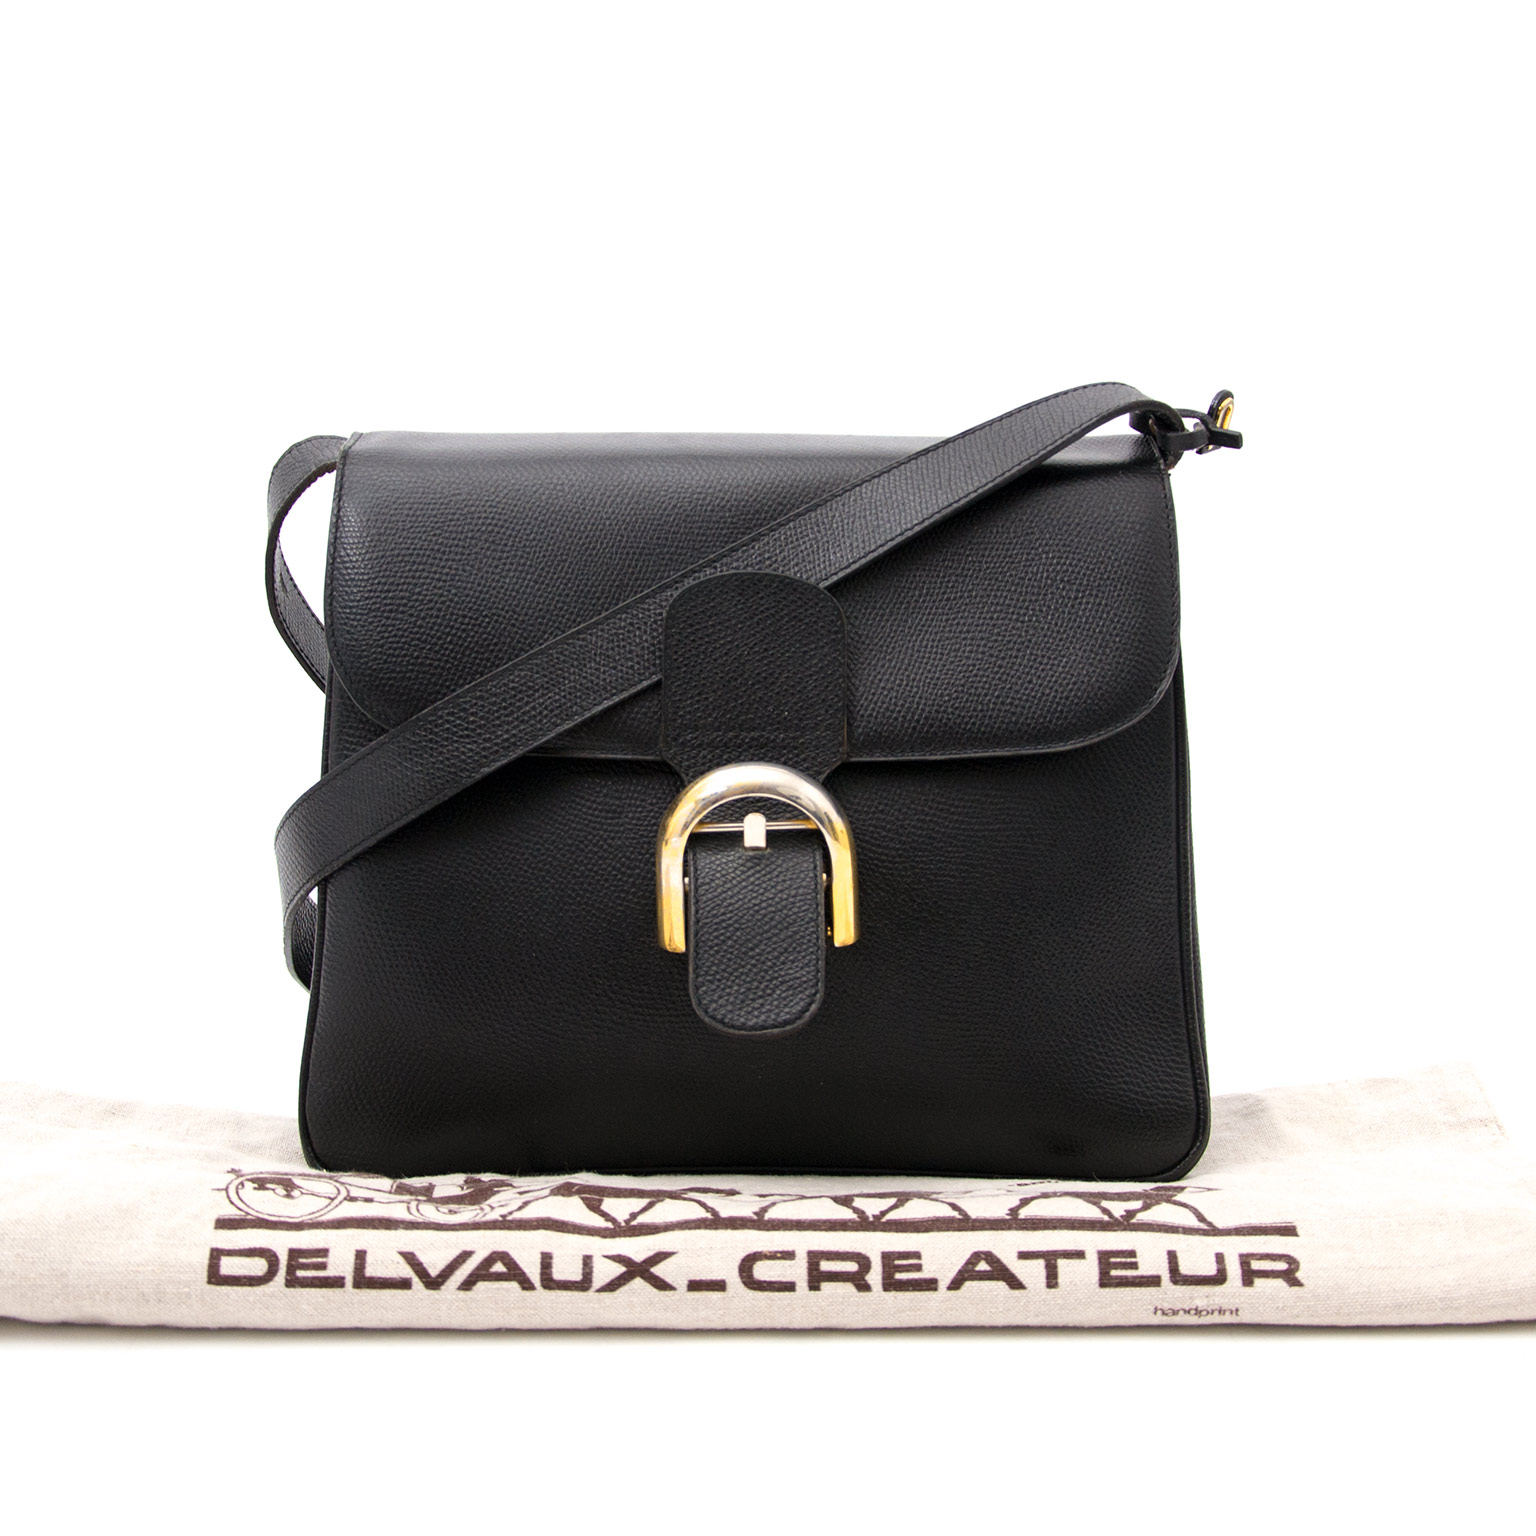 Shop online Delvaux Brillant Baudrier Black Leather Bag at Labellov.com